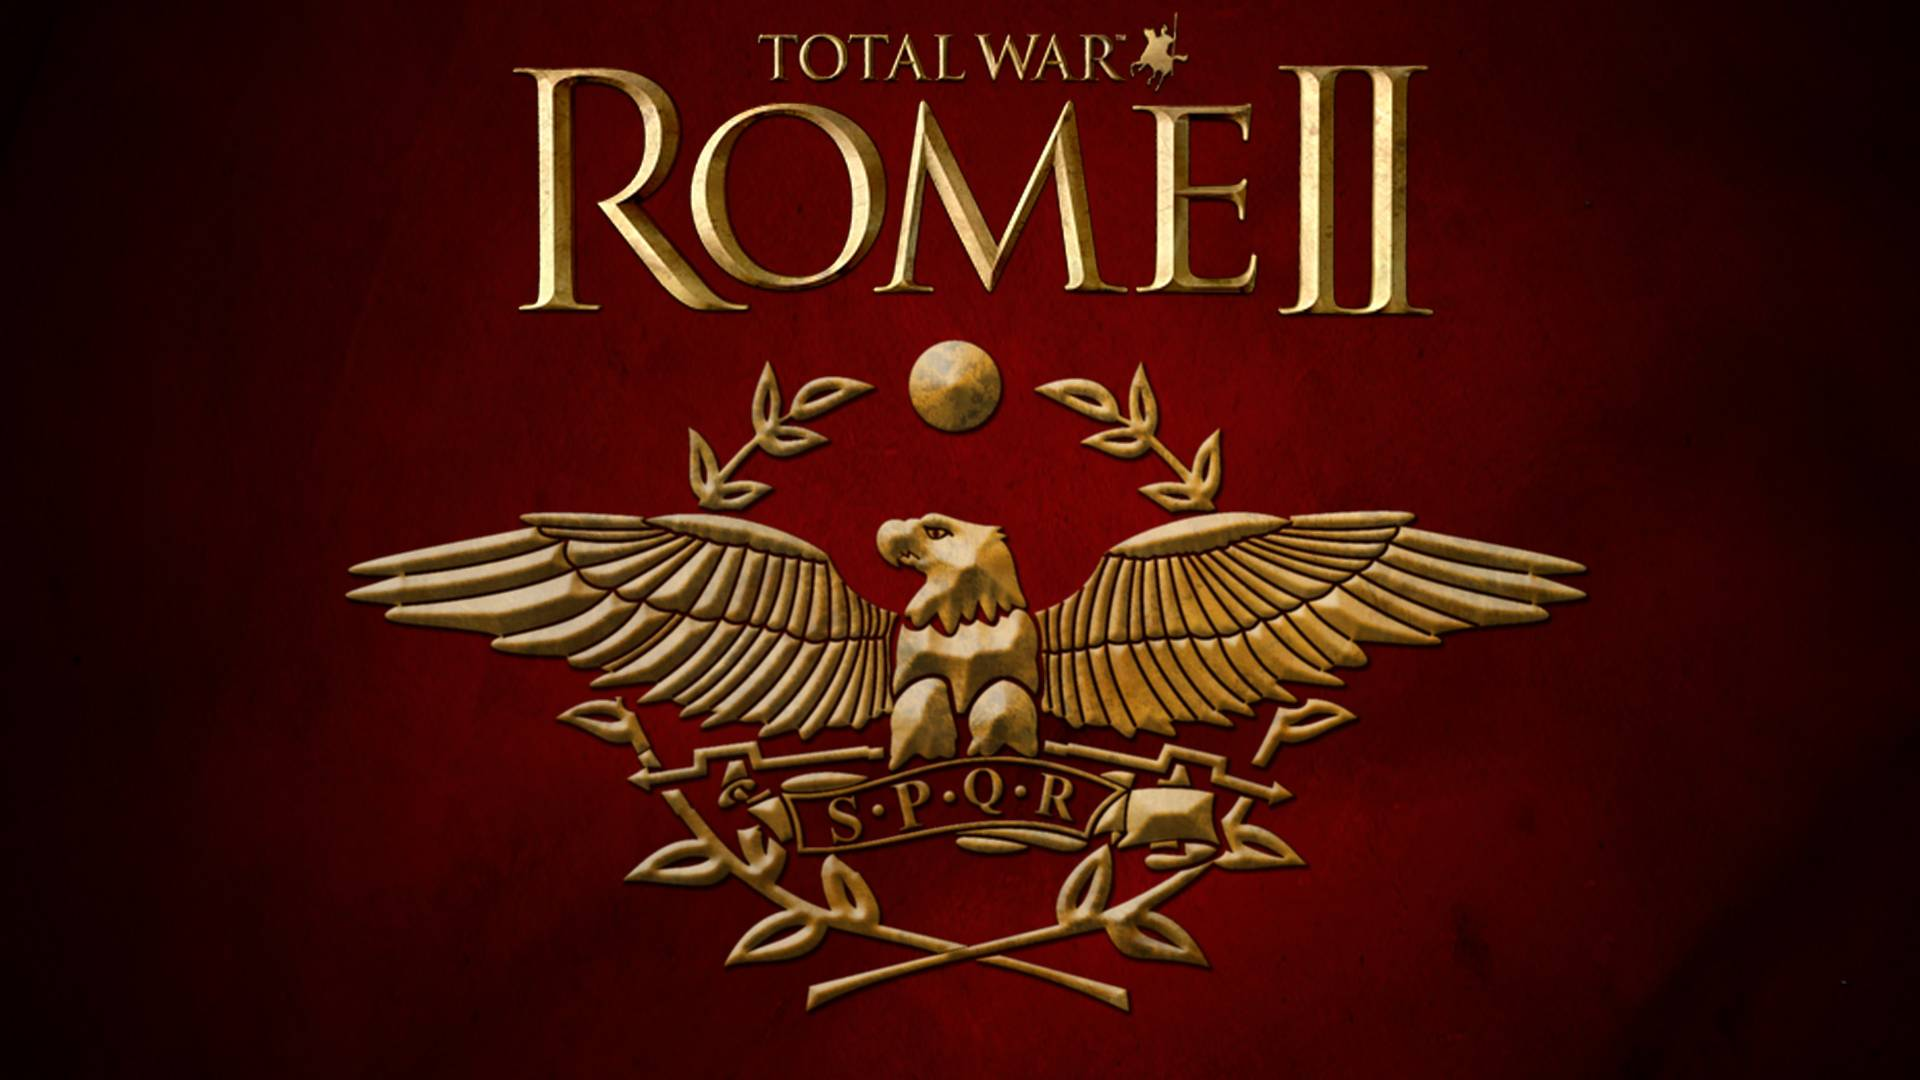 Total War Rome 2 Wallpapers In Hd Page 2